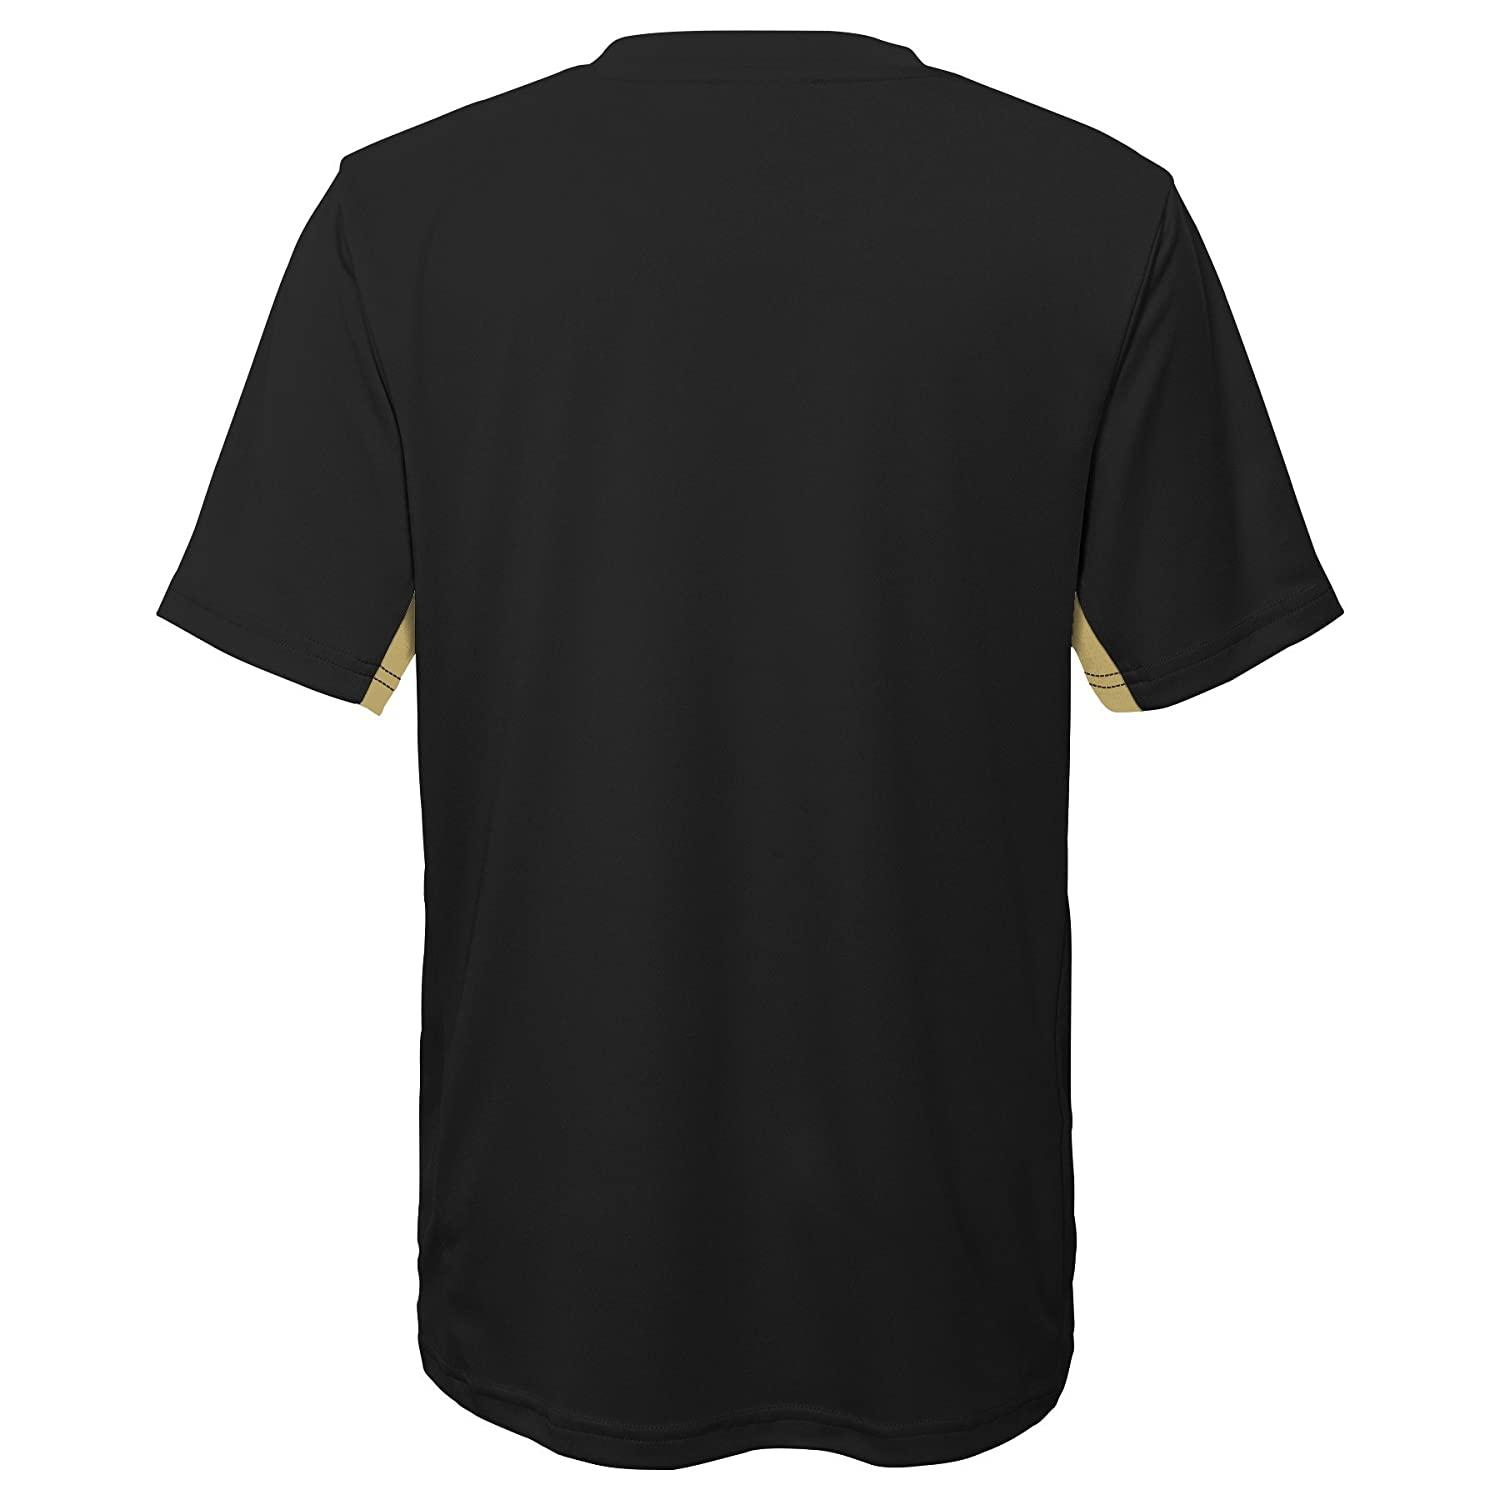 Youth Medium Black 10-12 NCAA by Outerstuff NCAA Purdue Boilermakers Youth Boys Mainframe: Short Sleeve Performance Top